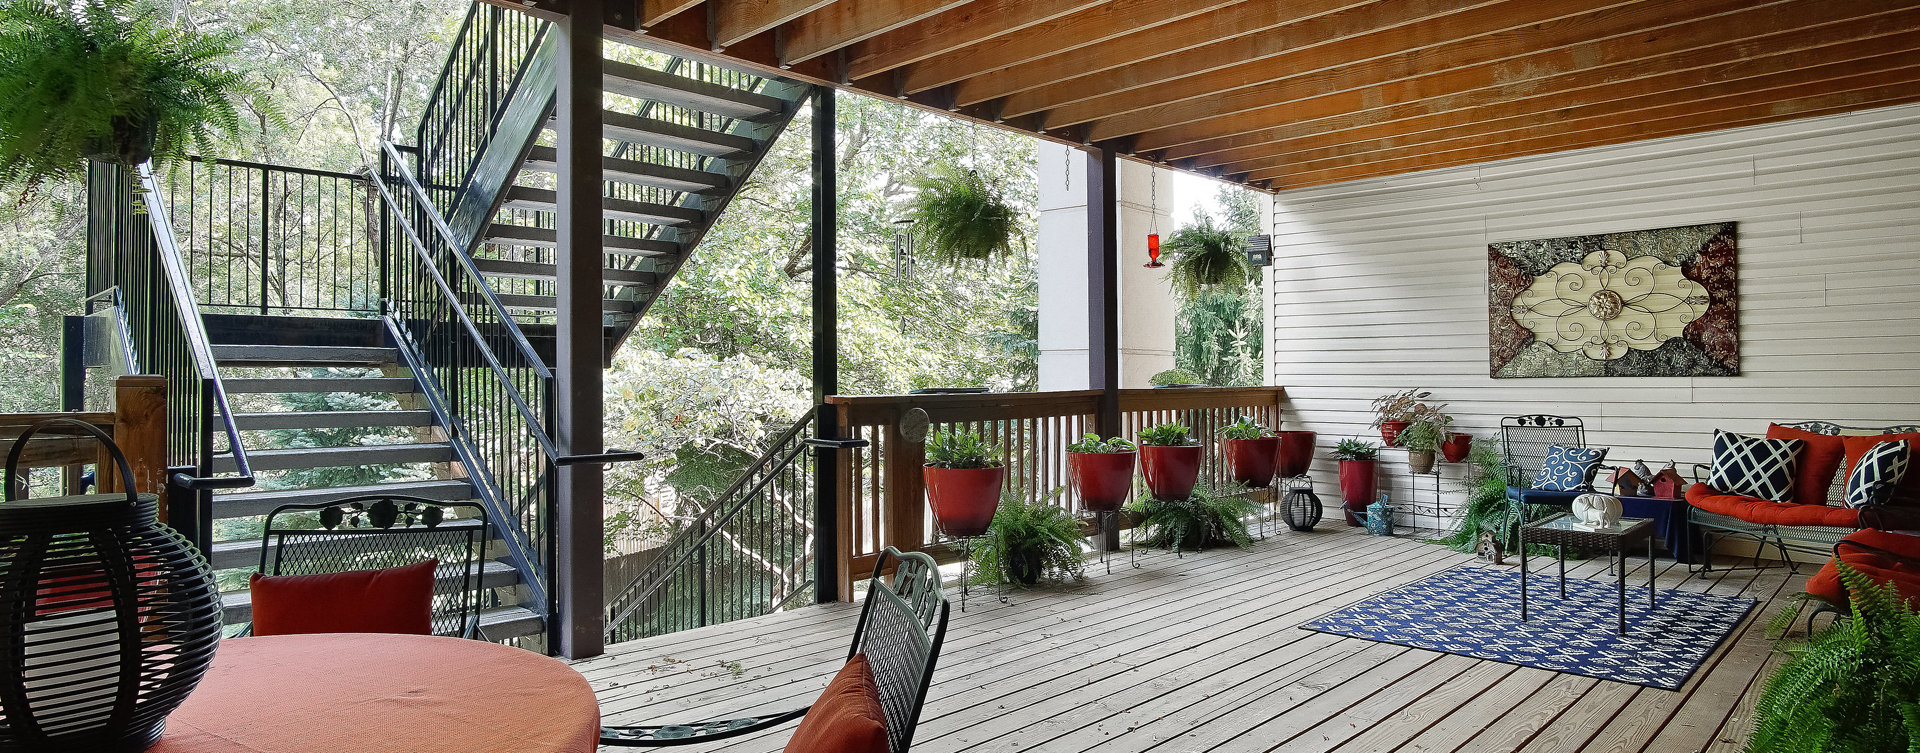 Enjoy the outdoors in a whole new light by stepping onto our back deck at Bickford of Raytown